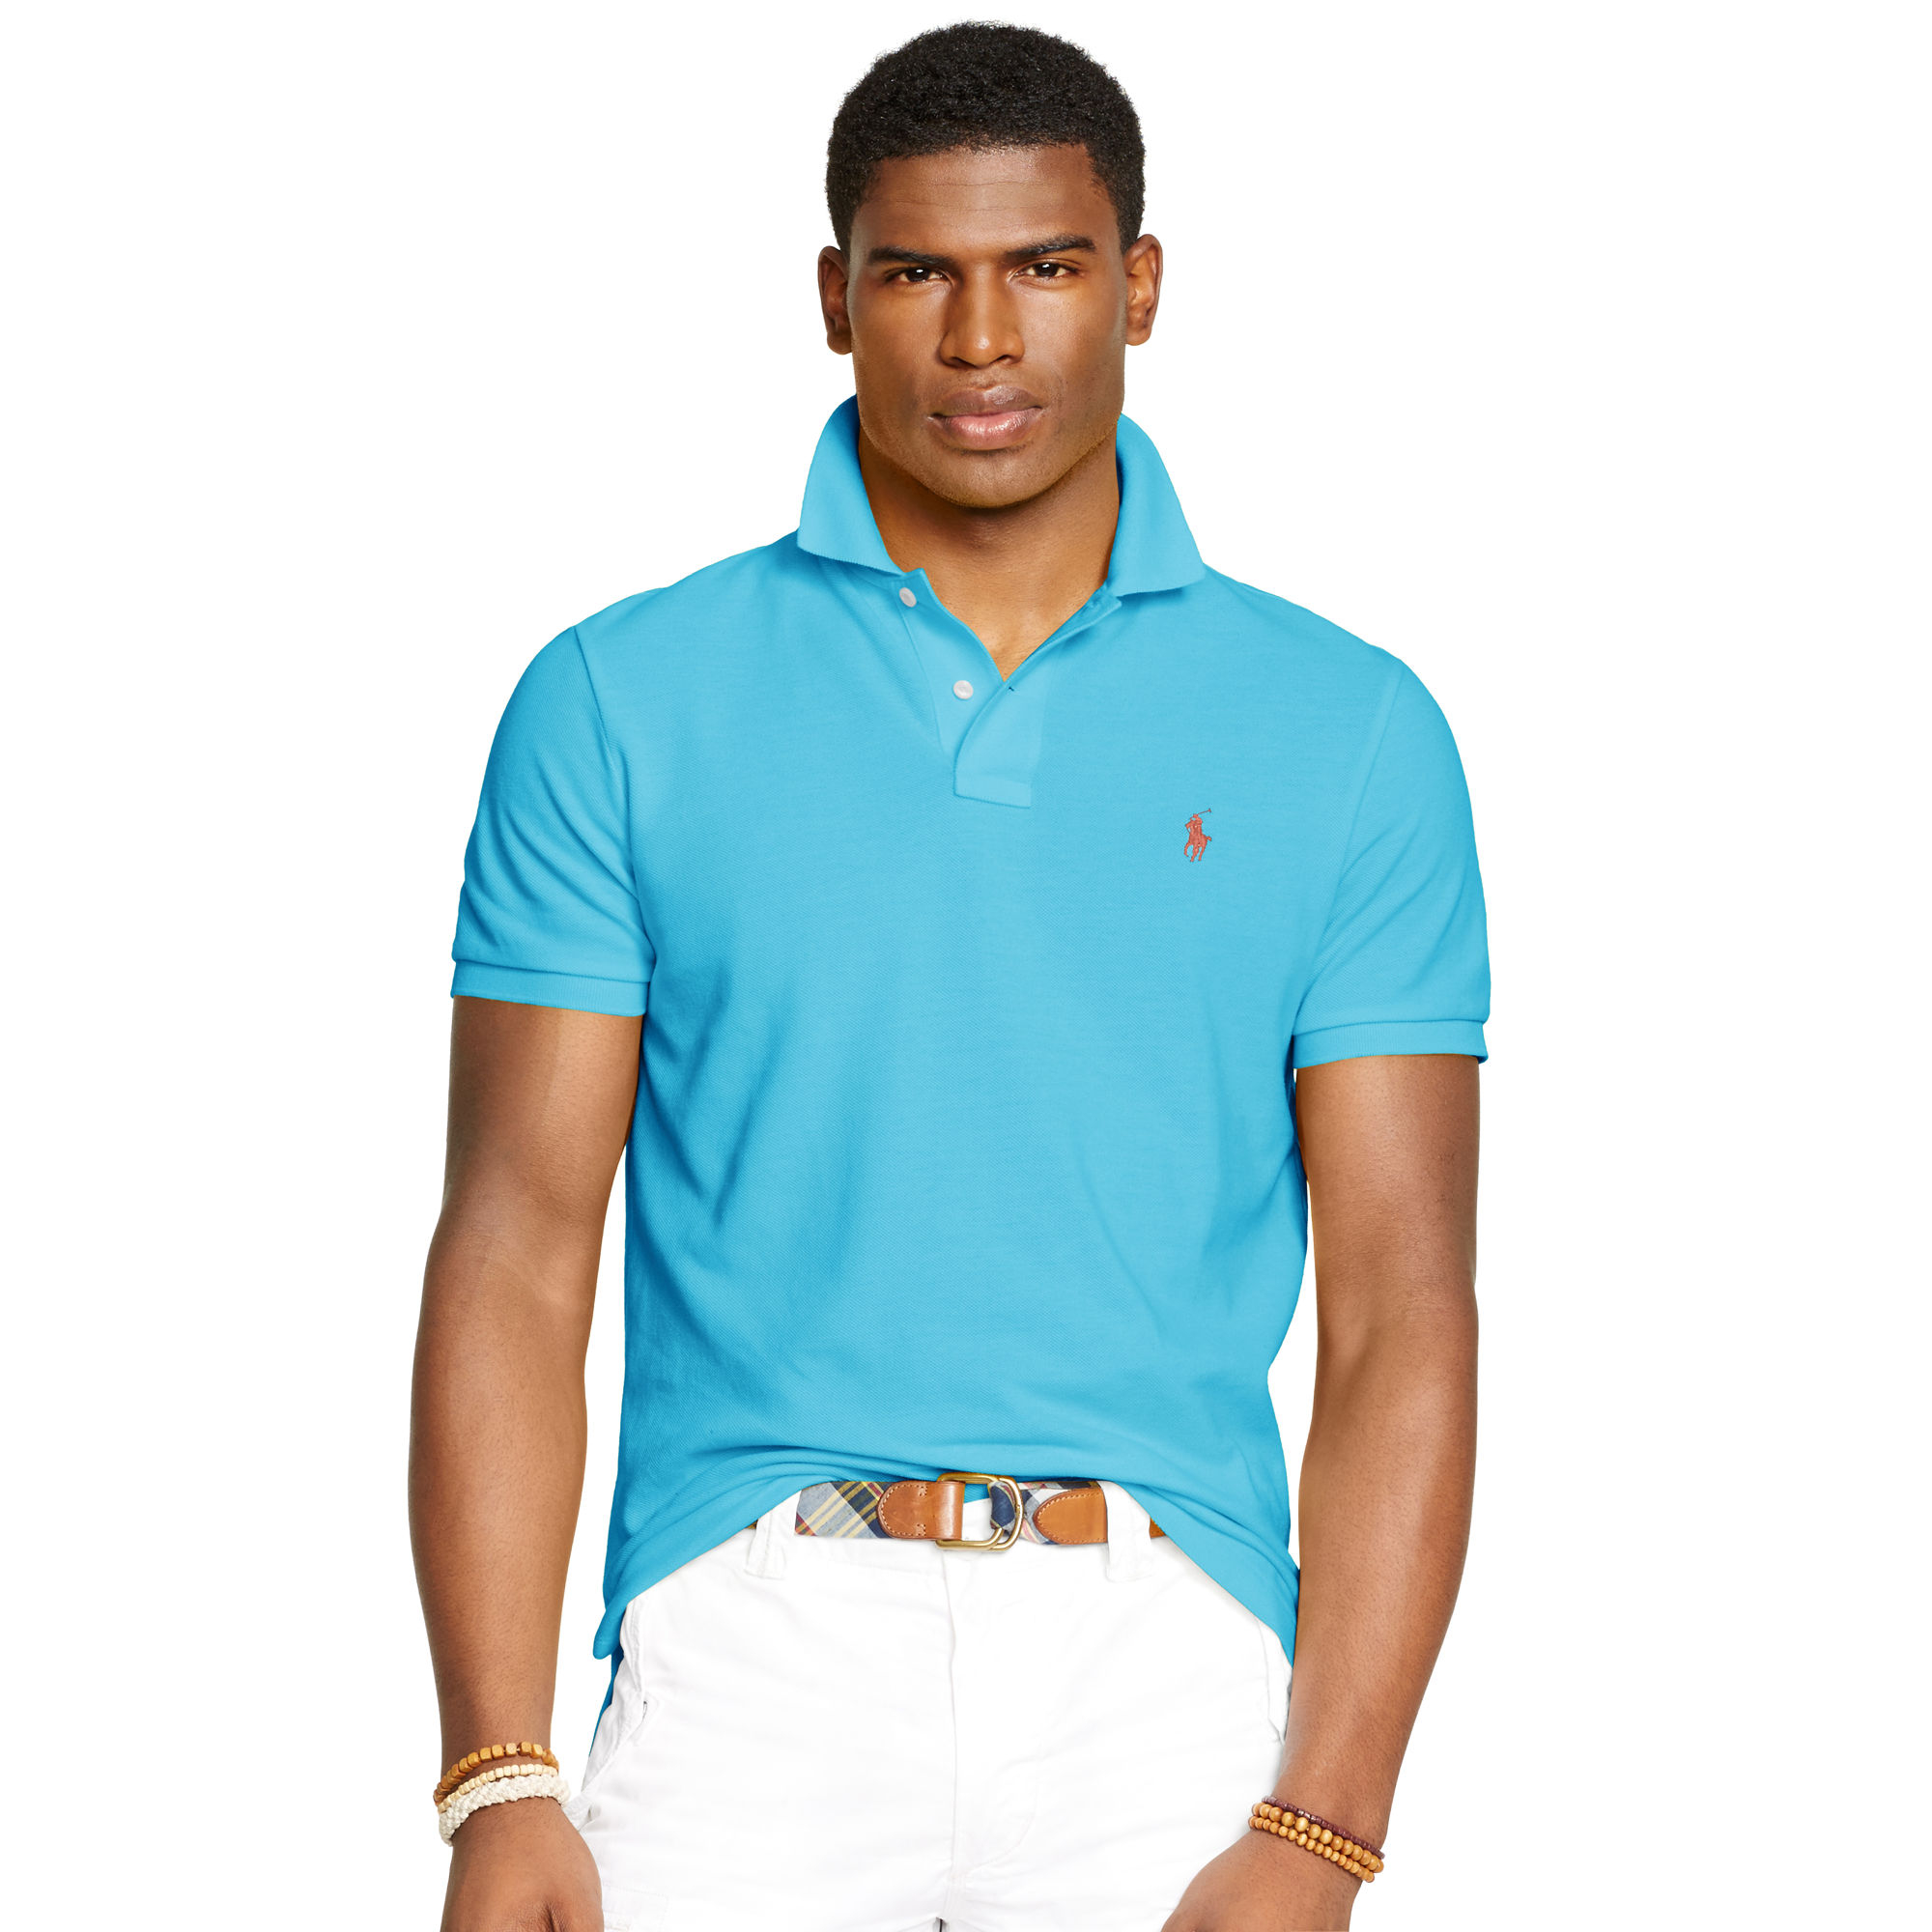 Shop men's designer T-shirts in a variety of fits & colors at Hugo Boss. Discover fitted designer T-shirts in crew & V-necks, short & long-sleeved. Free shipping.